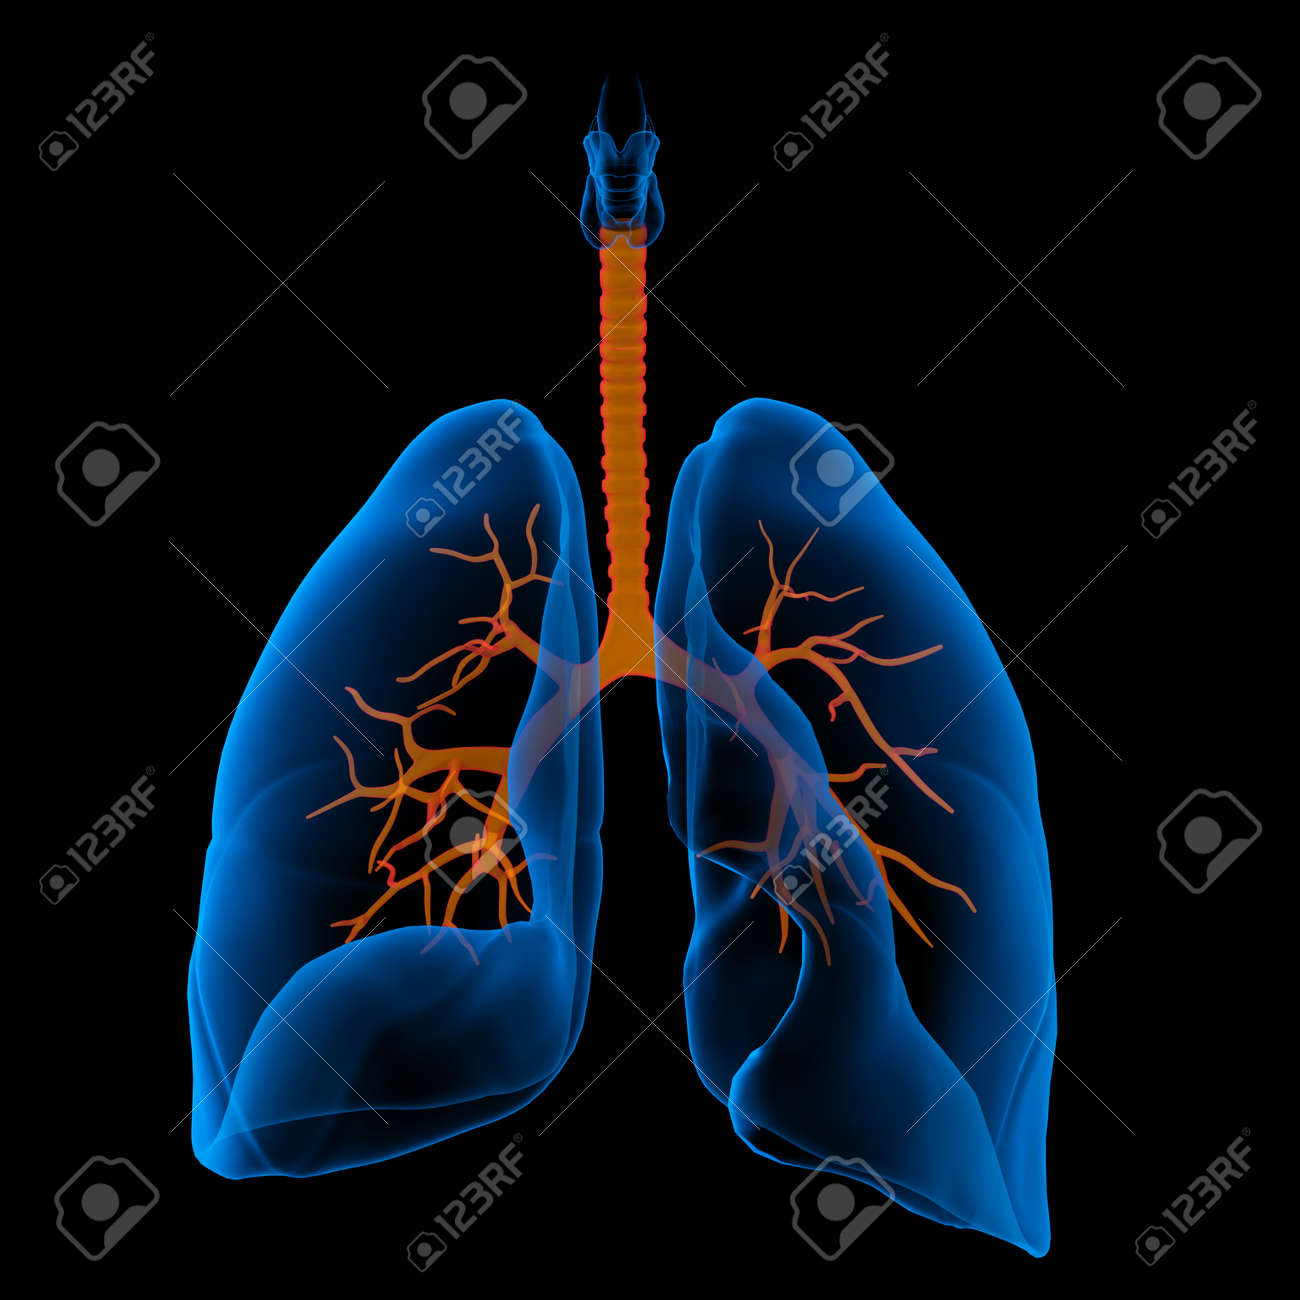 3D medical illustration - lungs with visible bronchi -front view - 168787184